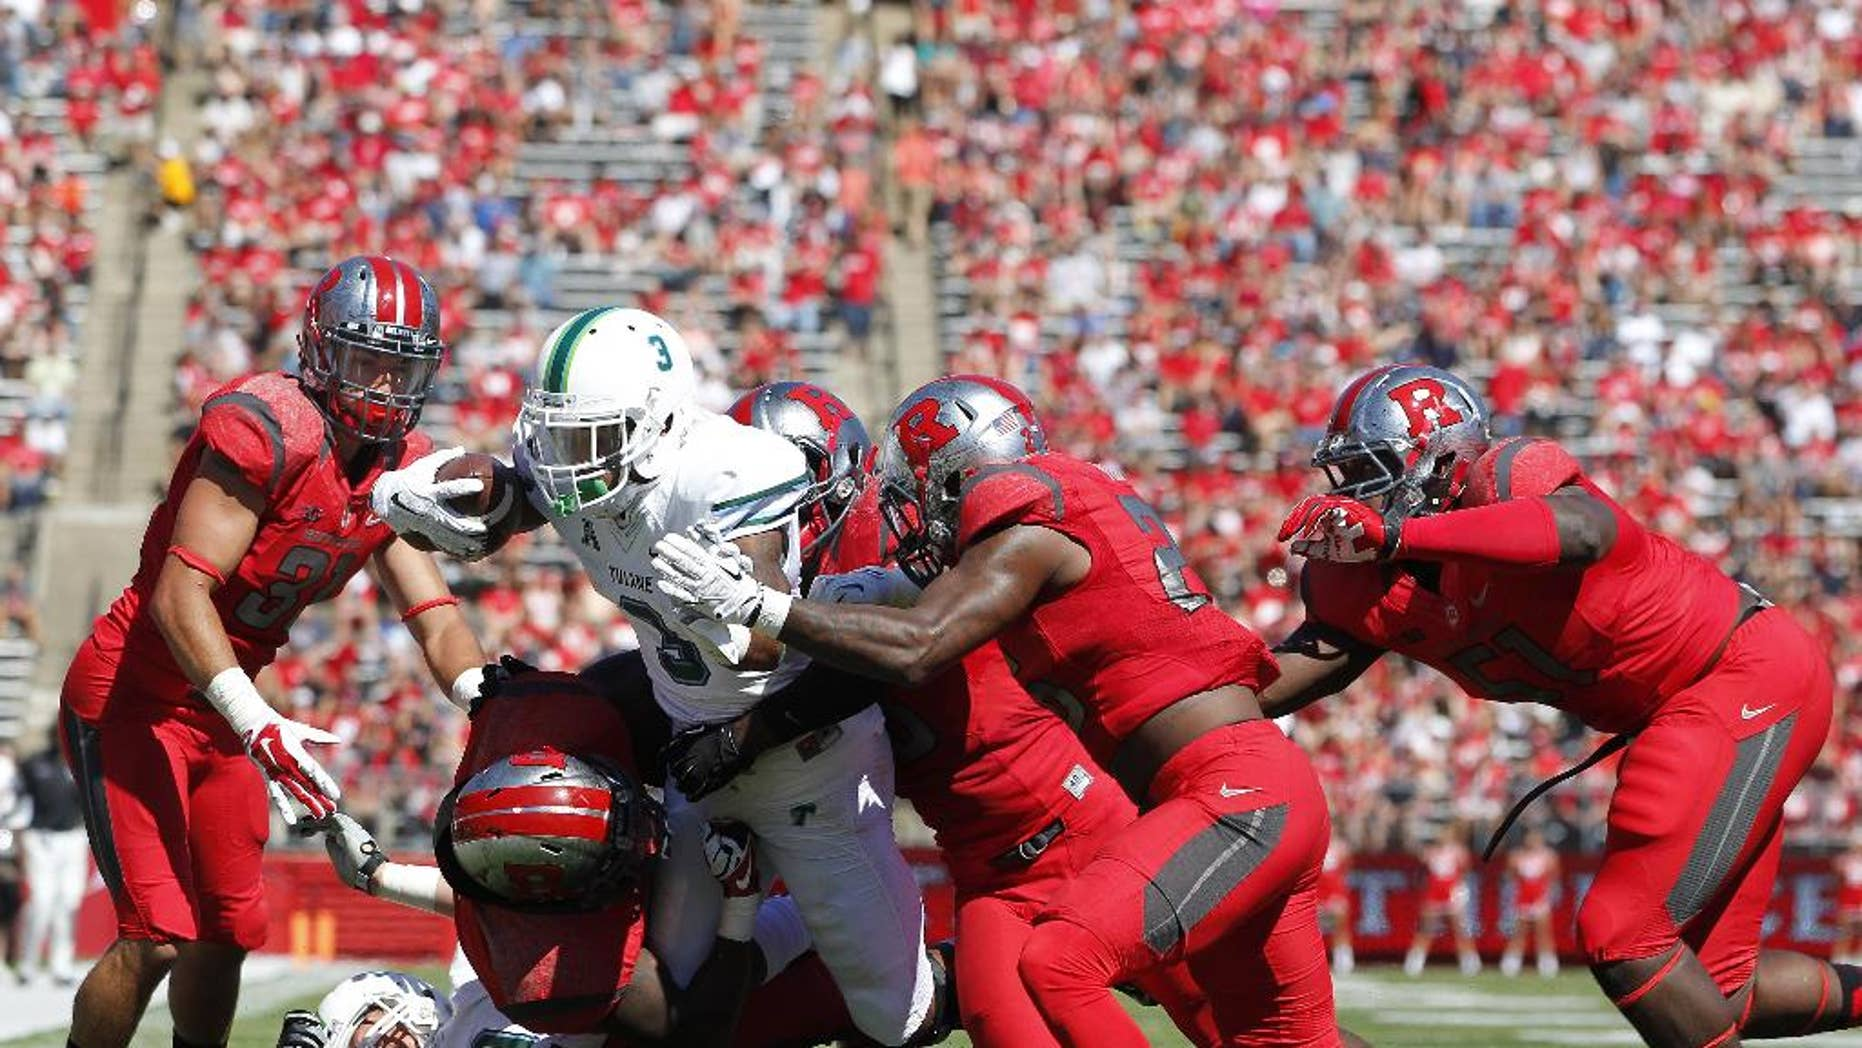 Tulane running back Sherman Badie (3) is tackled by Rutgers defenders L.J. Liston, Jonathan Aiken and others short of the end zone during the first half of an NCAA college football game, Saturday, Sept. 27, 2014, in Piscataway, N.J. Rutgers defeated Tulane 31-6. (AP Photo/Rich Schultz)